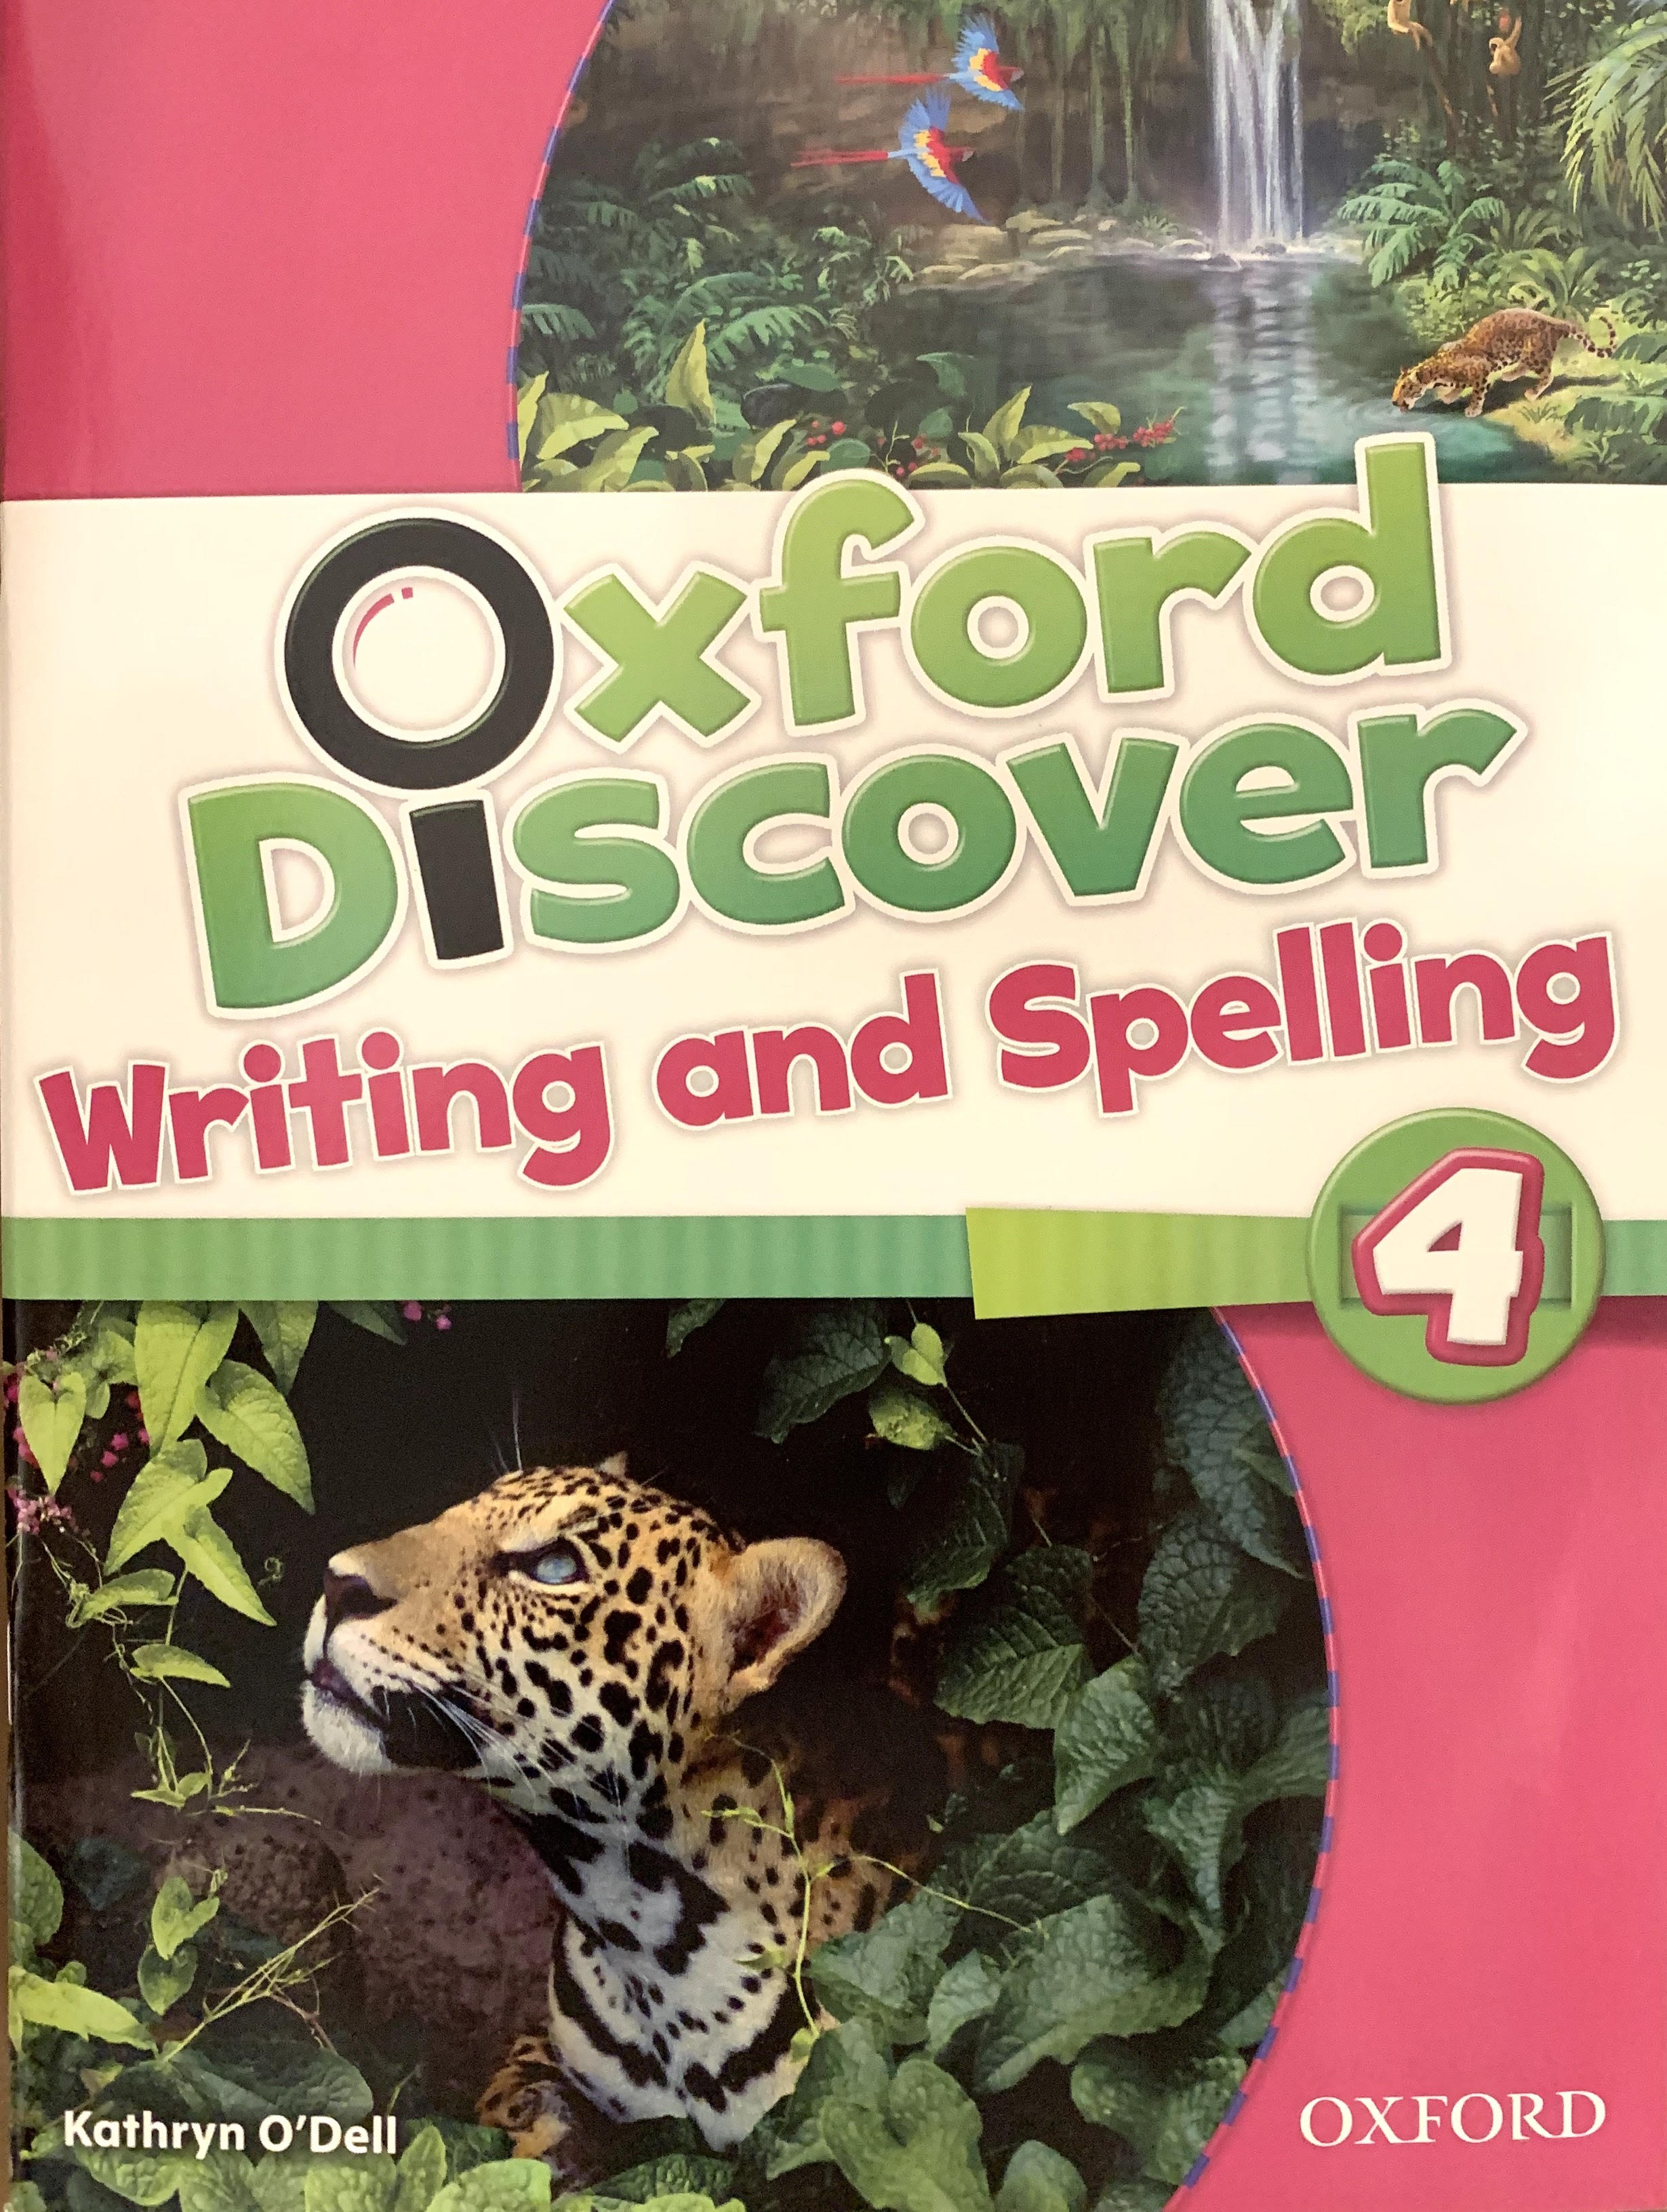 Oxford Discover Writing and Spelling 4